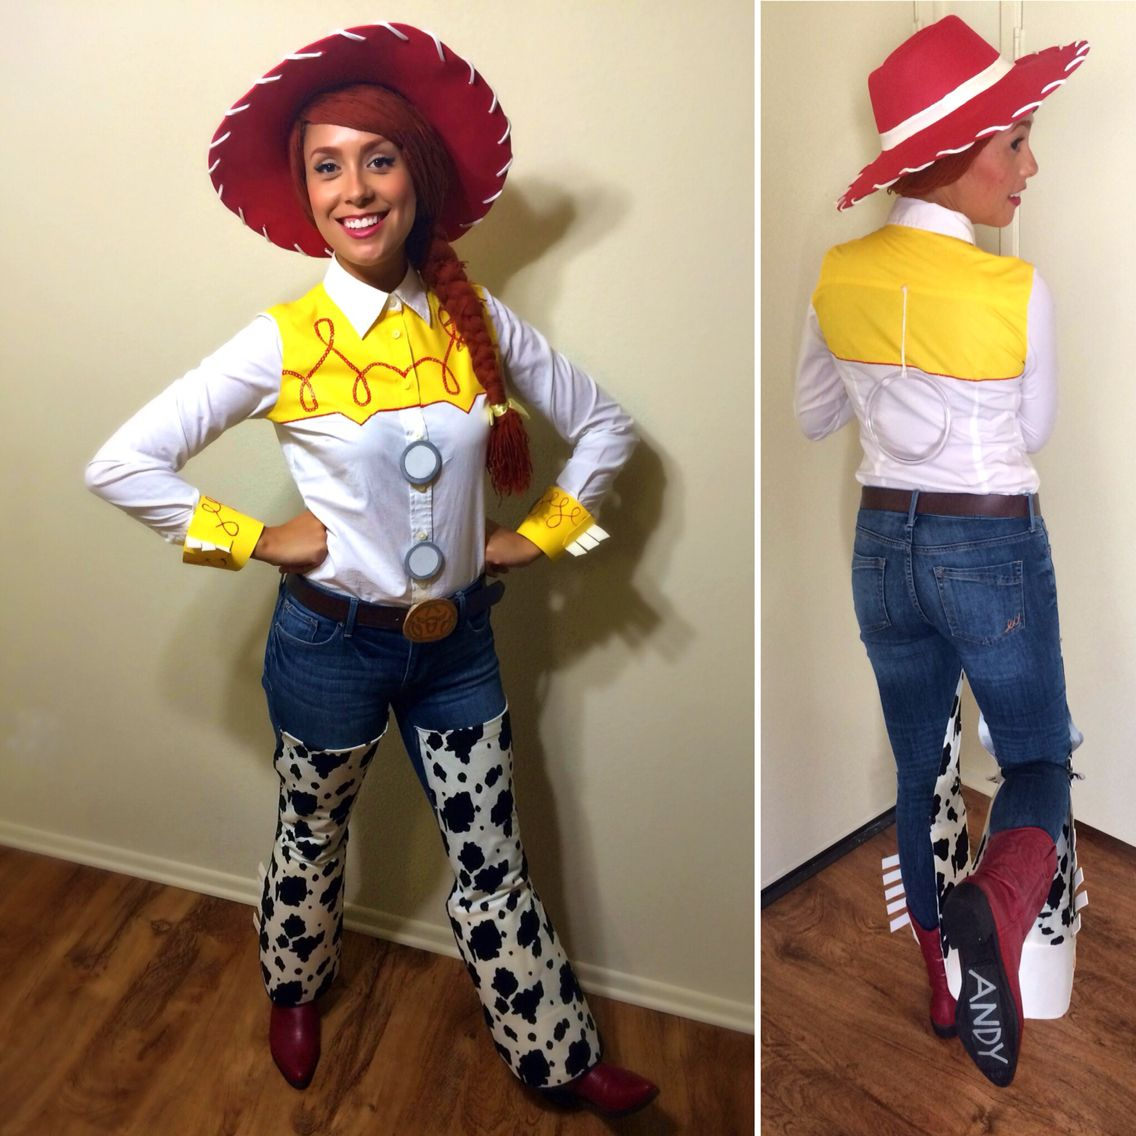 Went All Out This Year And Made My Own Diy Jessie The